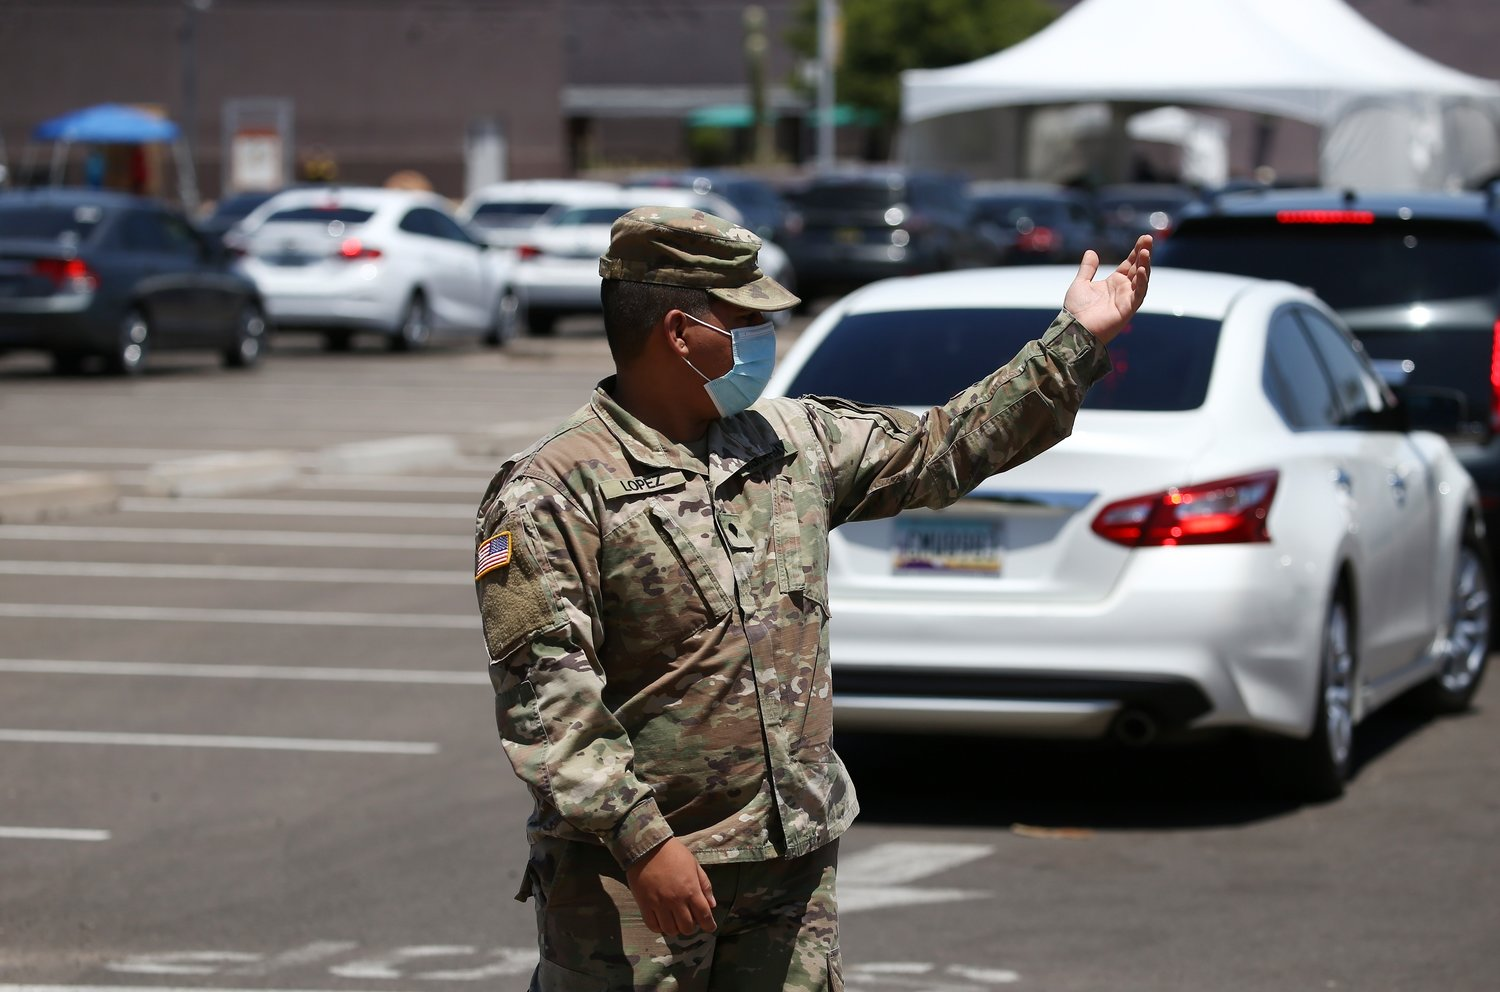 A member of the National Guard directs traffic as people wait in line to get tested at a drive thru coronavirus testing site at South Mountain Community College, Thursday, July 9, 2020, in Phoenix.